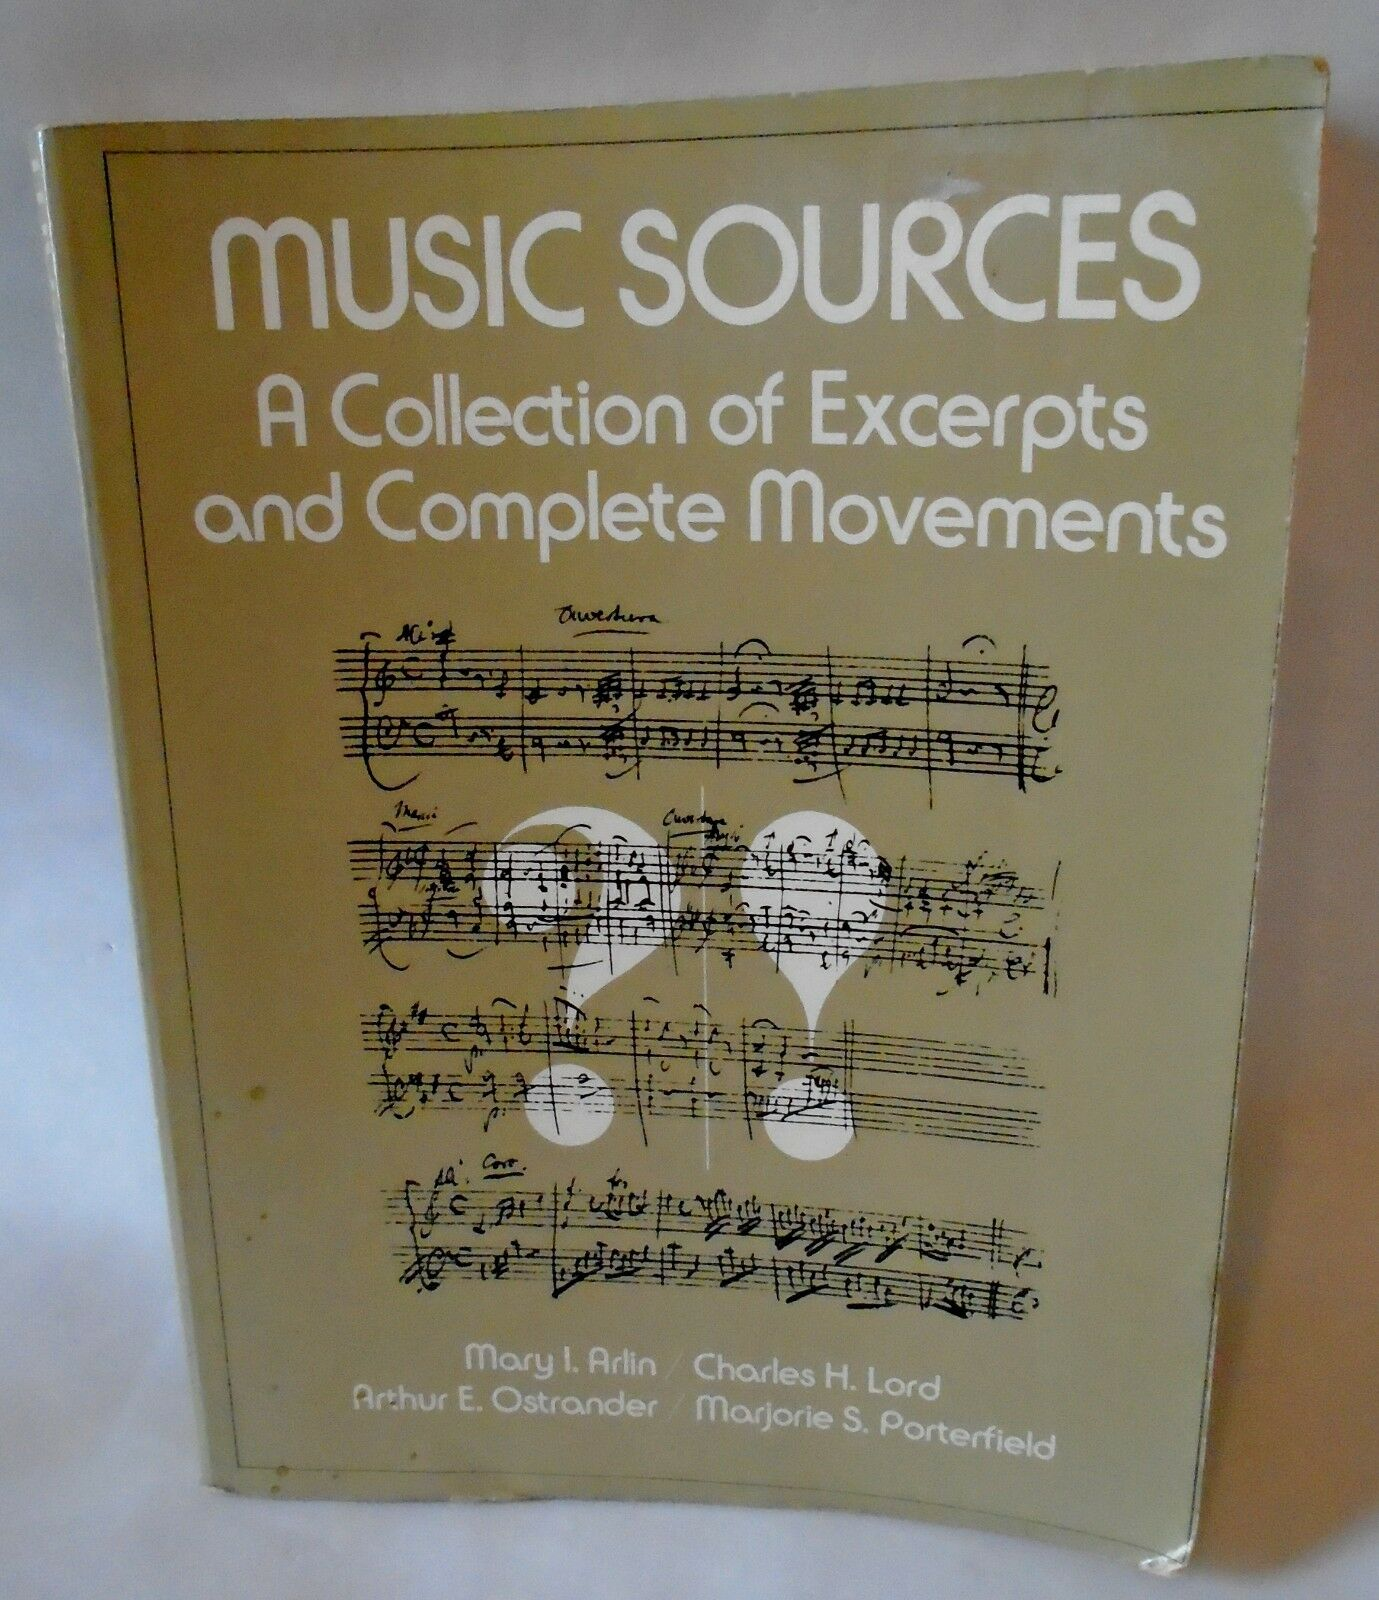 Music Sources Collection Excerpts Complete Movements Arlin Lord  Ostrander 1979